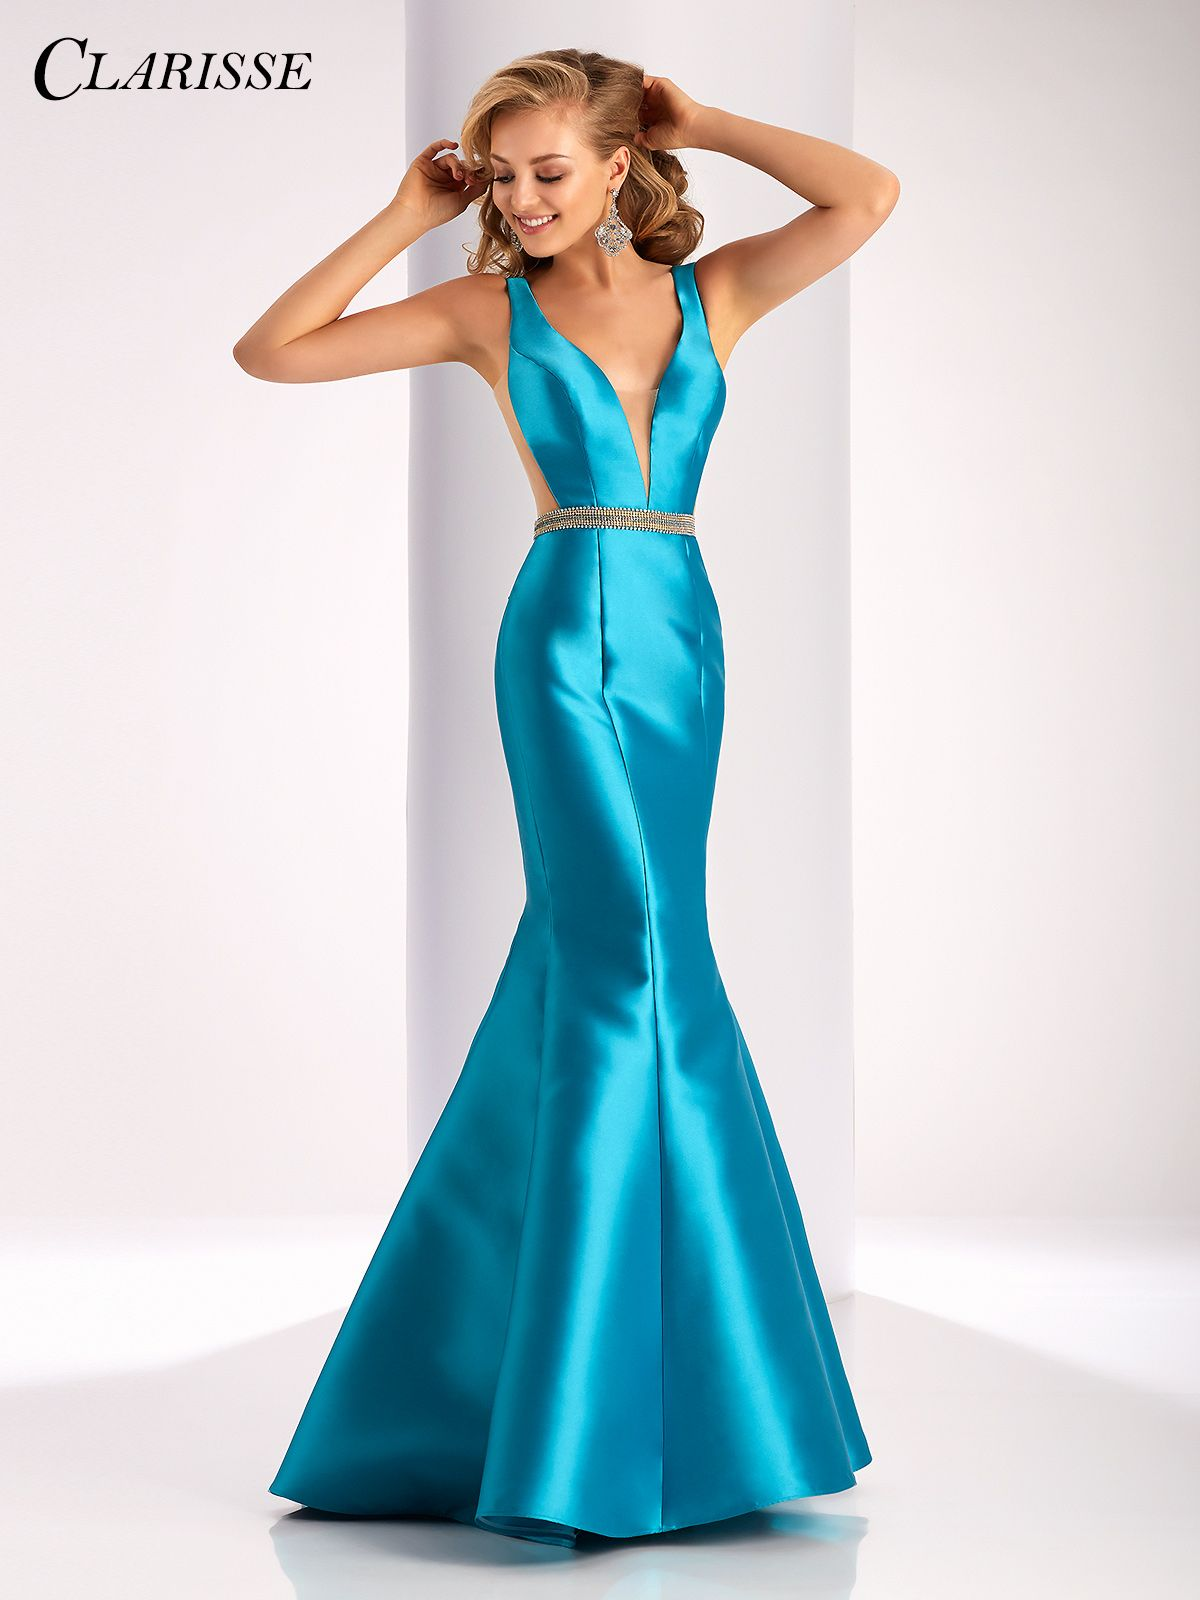 Clarisse prom dress sleeveless mikado mermaid dress with sheer